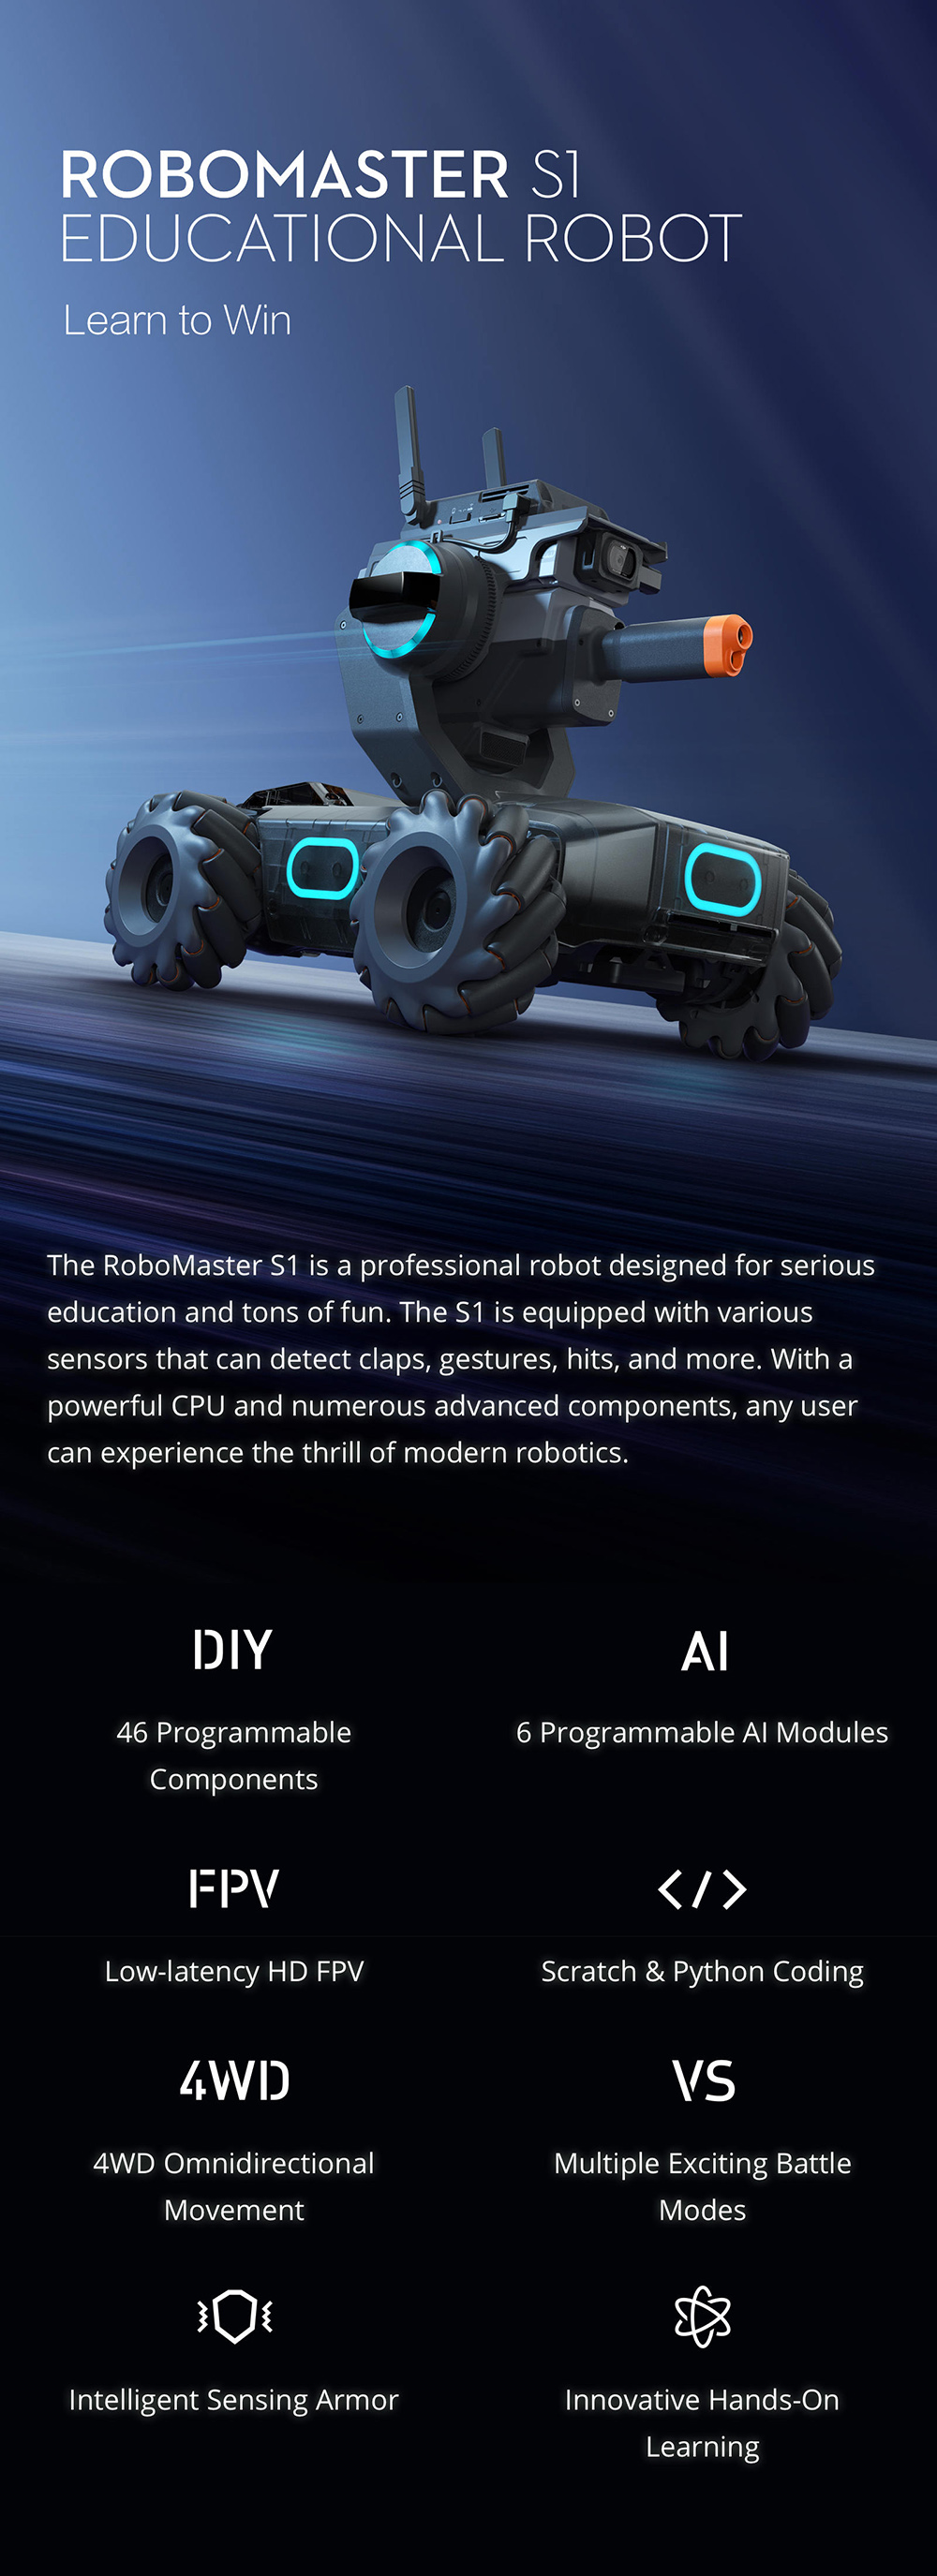 DJI Robomaster S1 STEAM DIY 4WD Brushless HD FPV APP Control Intelligent  Educational Robot With AI Modules Support Scratch 3 0 Python Program